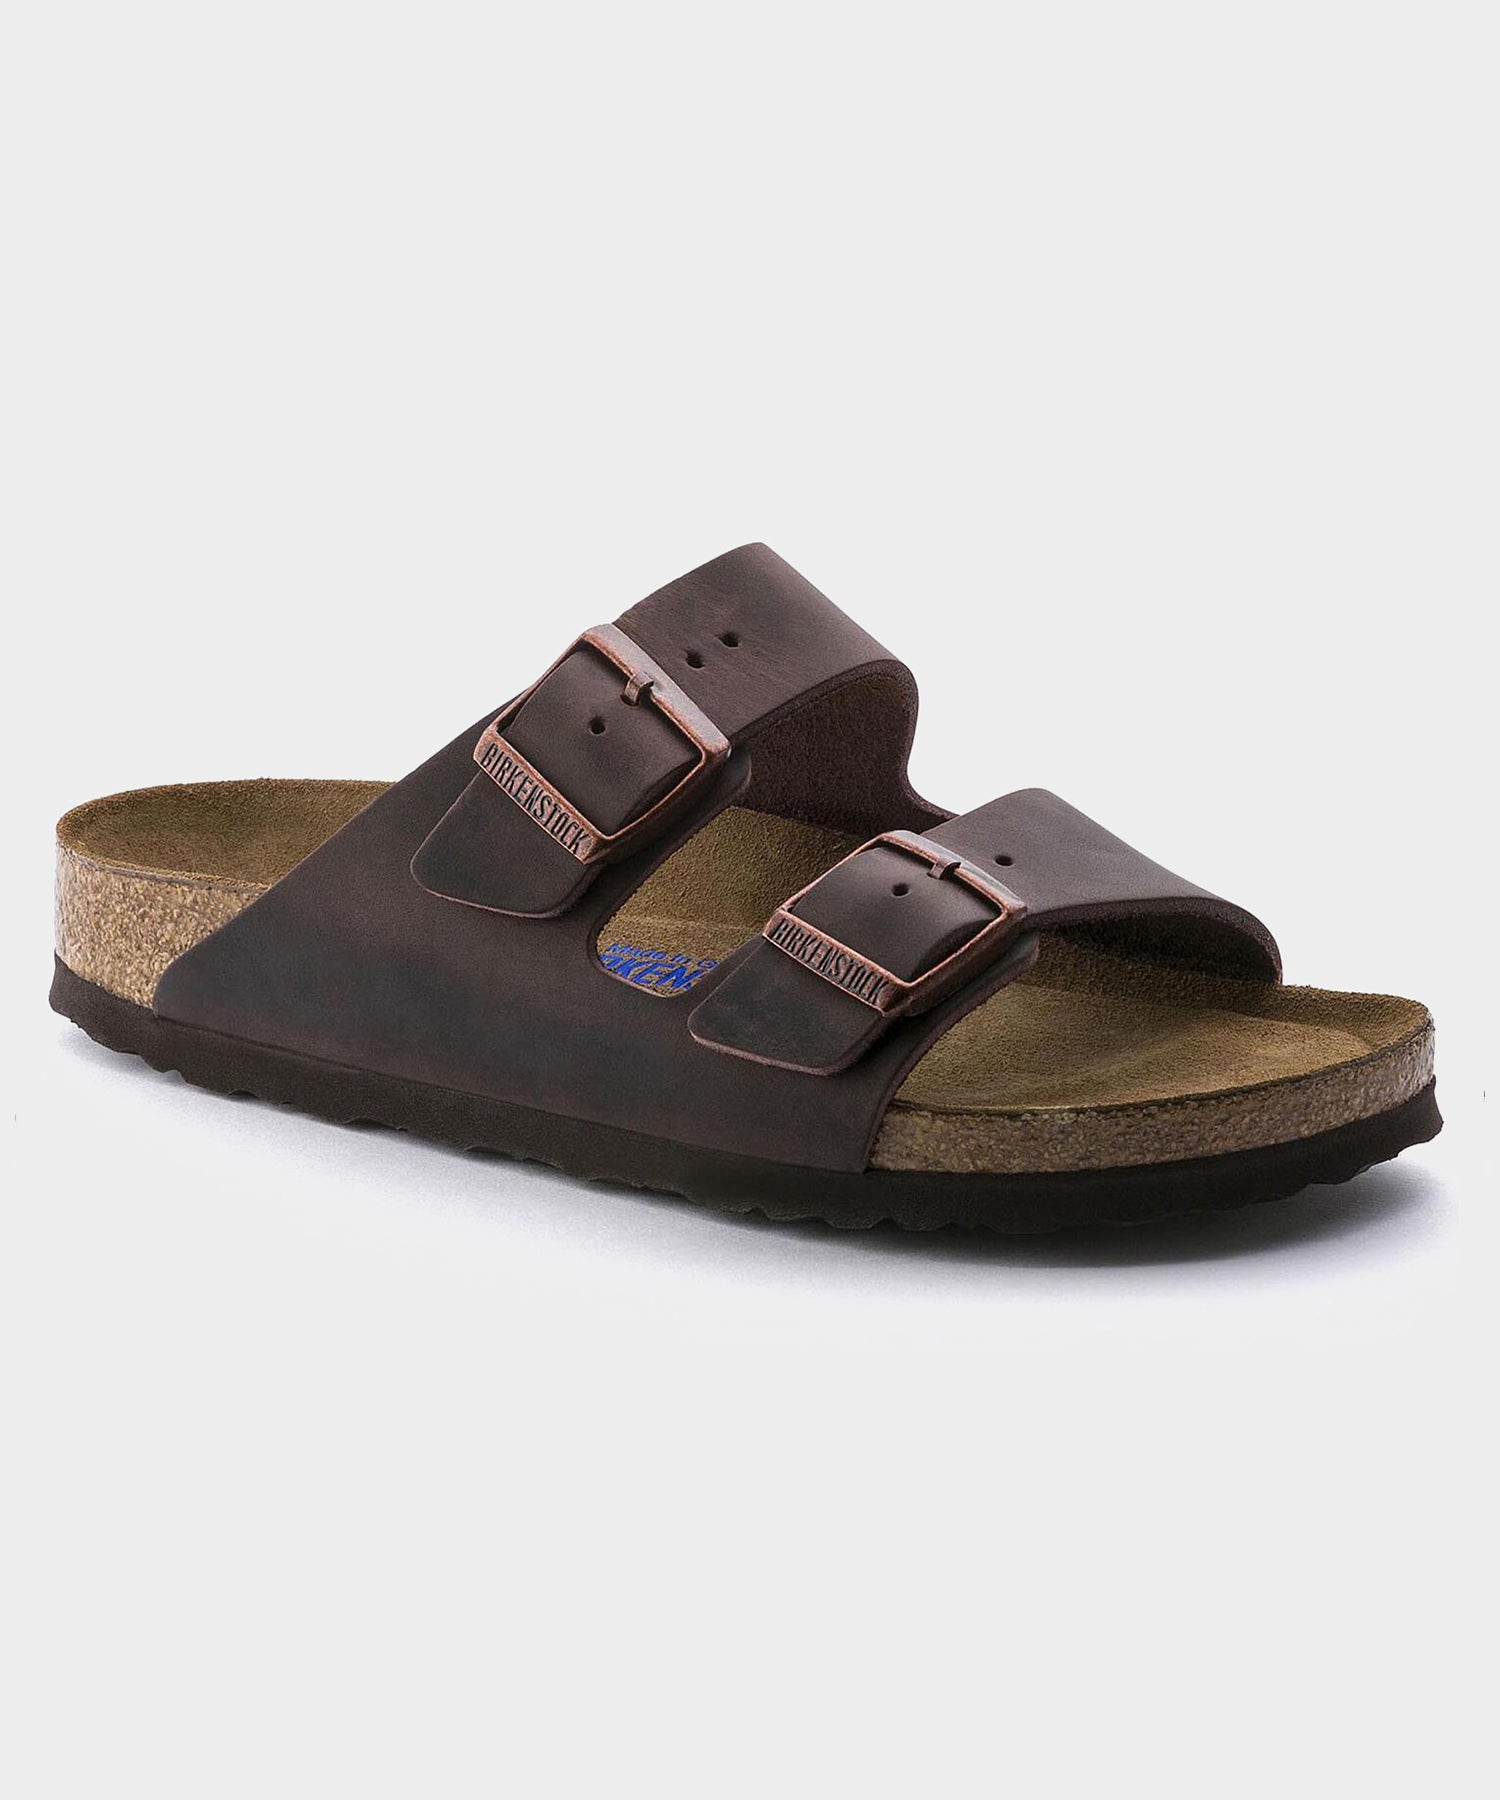 Birkenstock Arizona Soft Footbed in Oiled Habana Leather